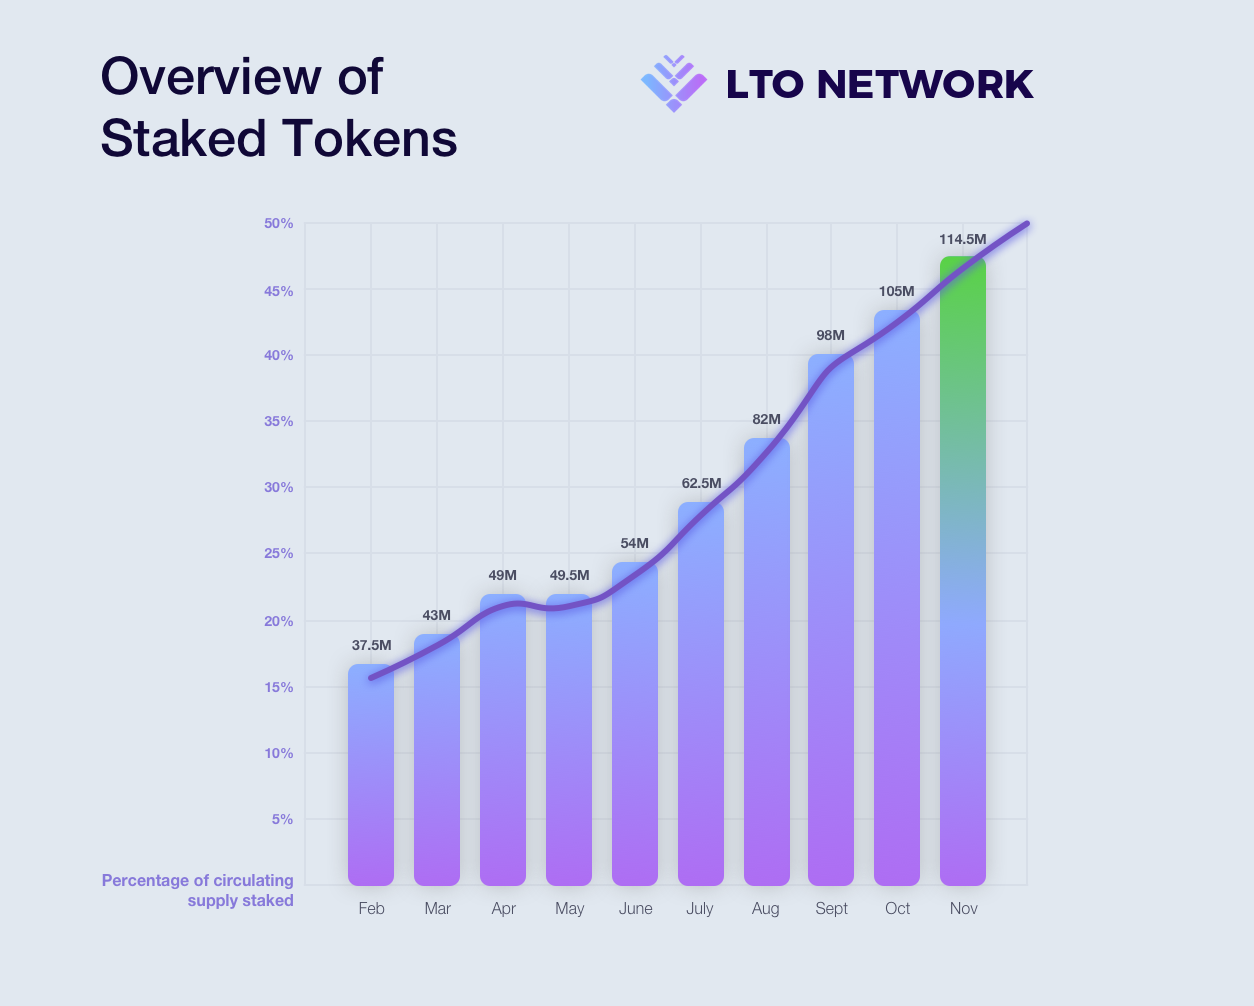 Overview of staked tokens on the mainnet 2020 Feb. - Nov.